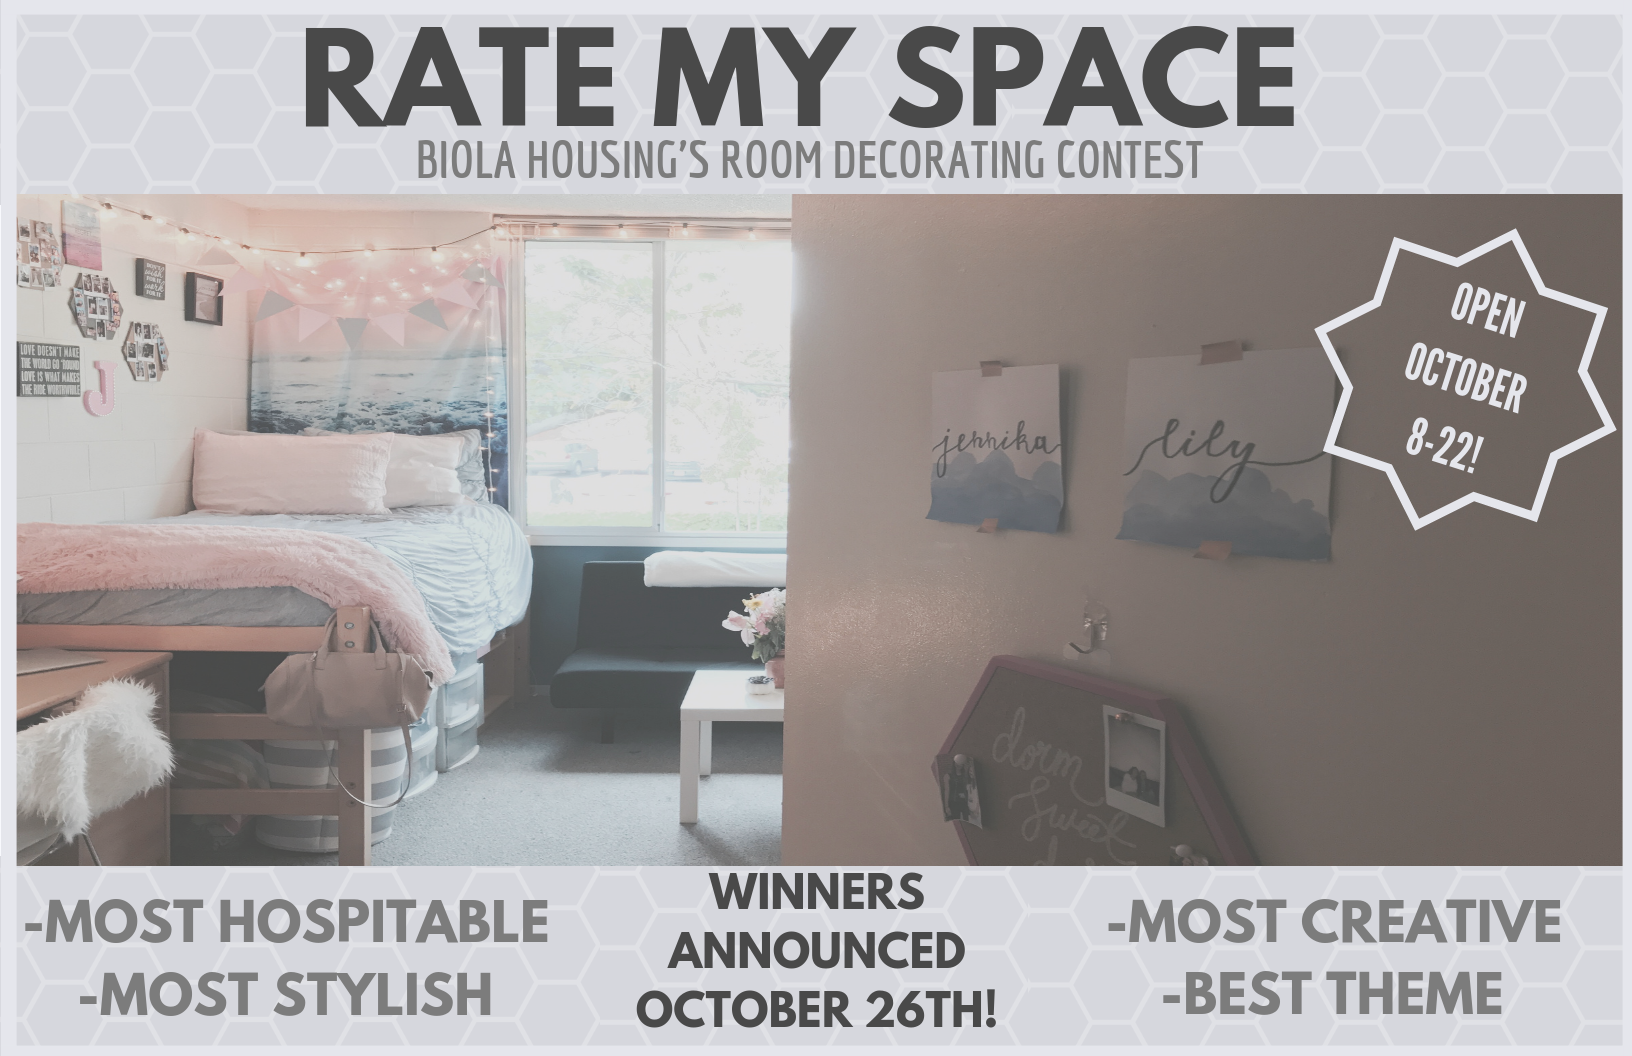 Rate My Space poster with background photo of decorated room and words Open October 8-22 printed on it